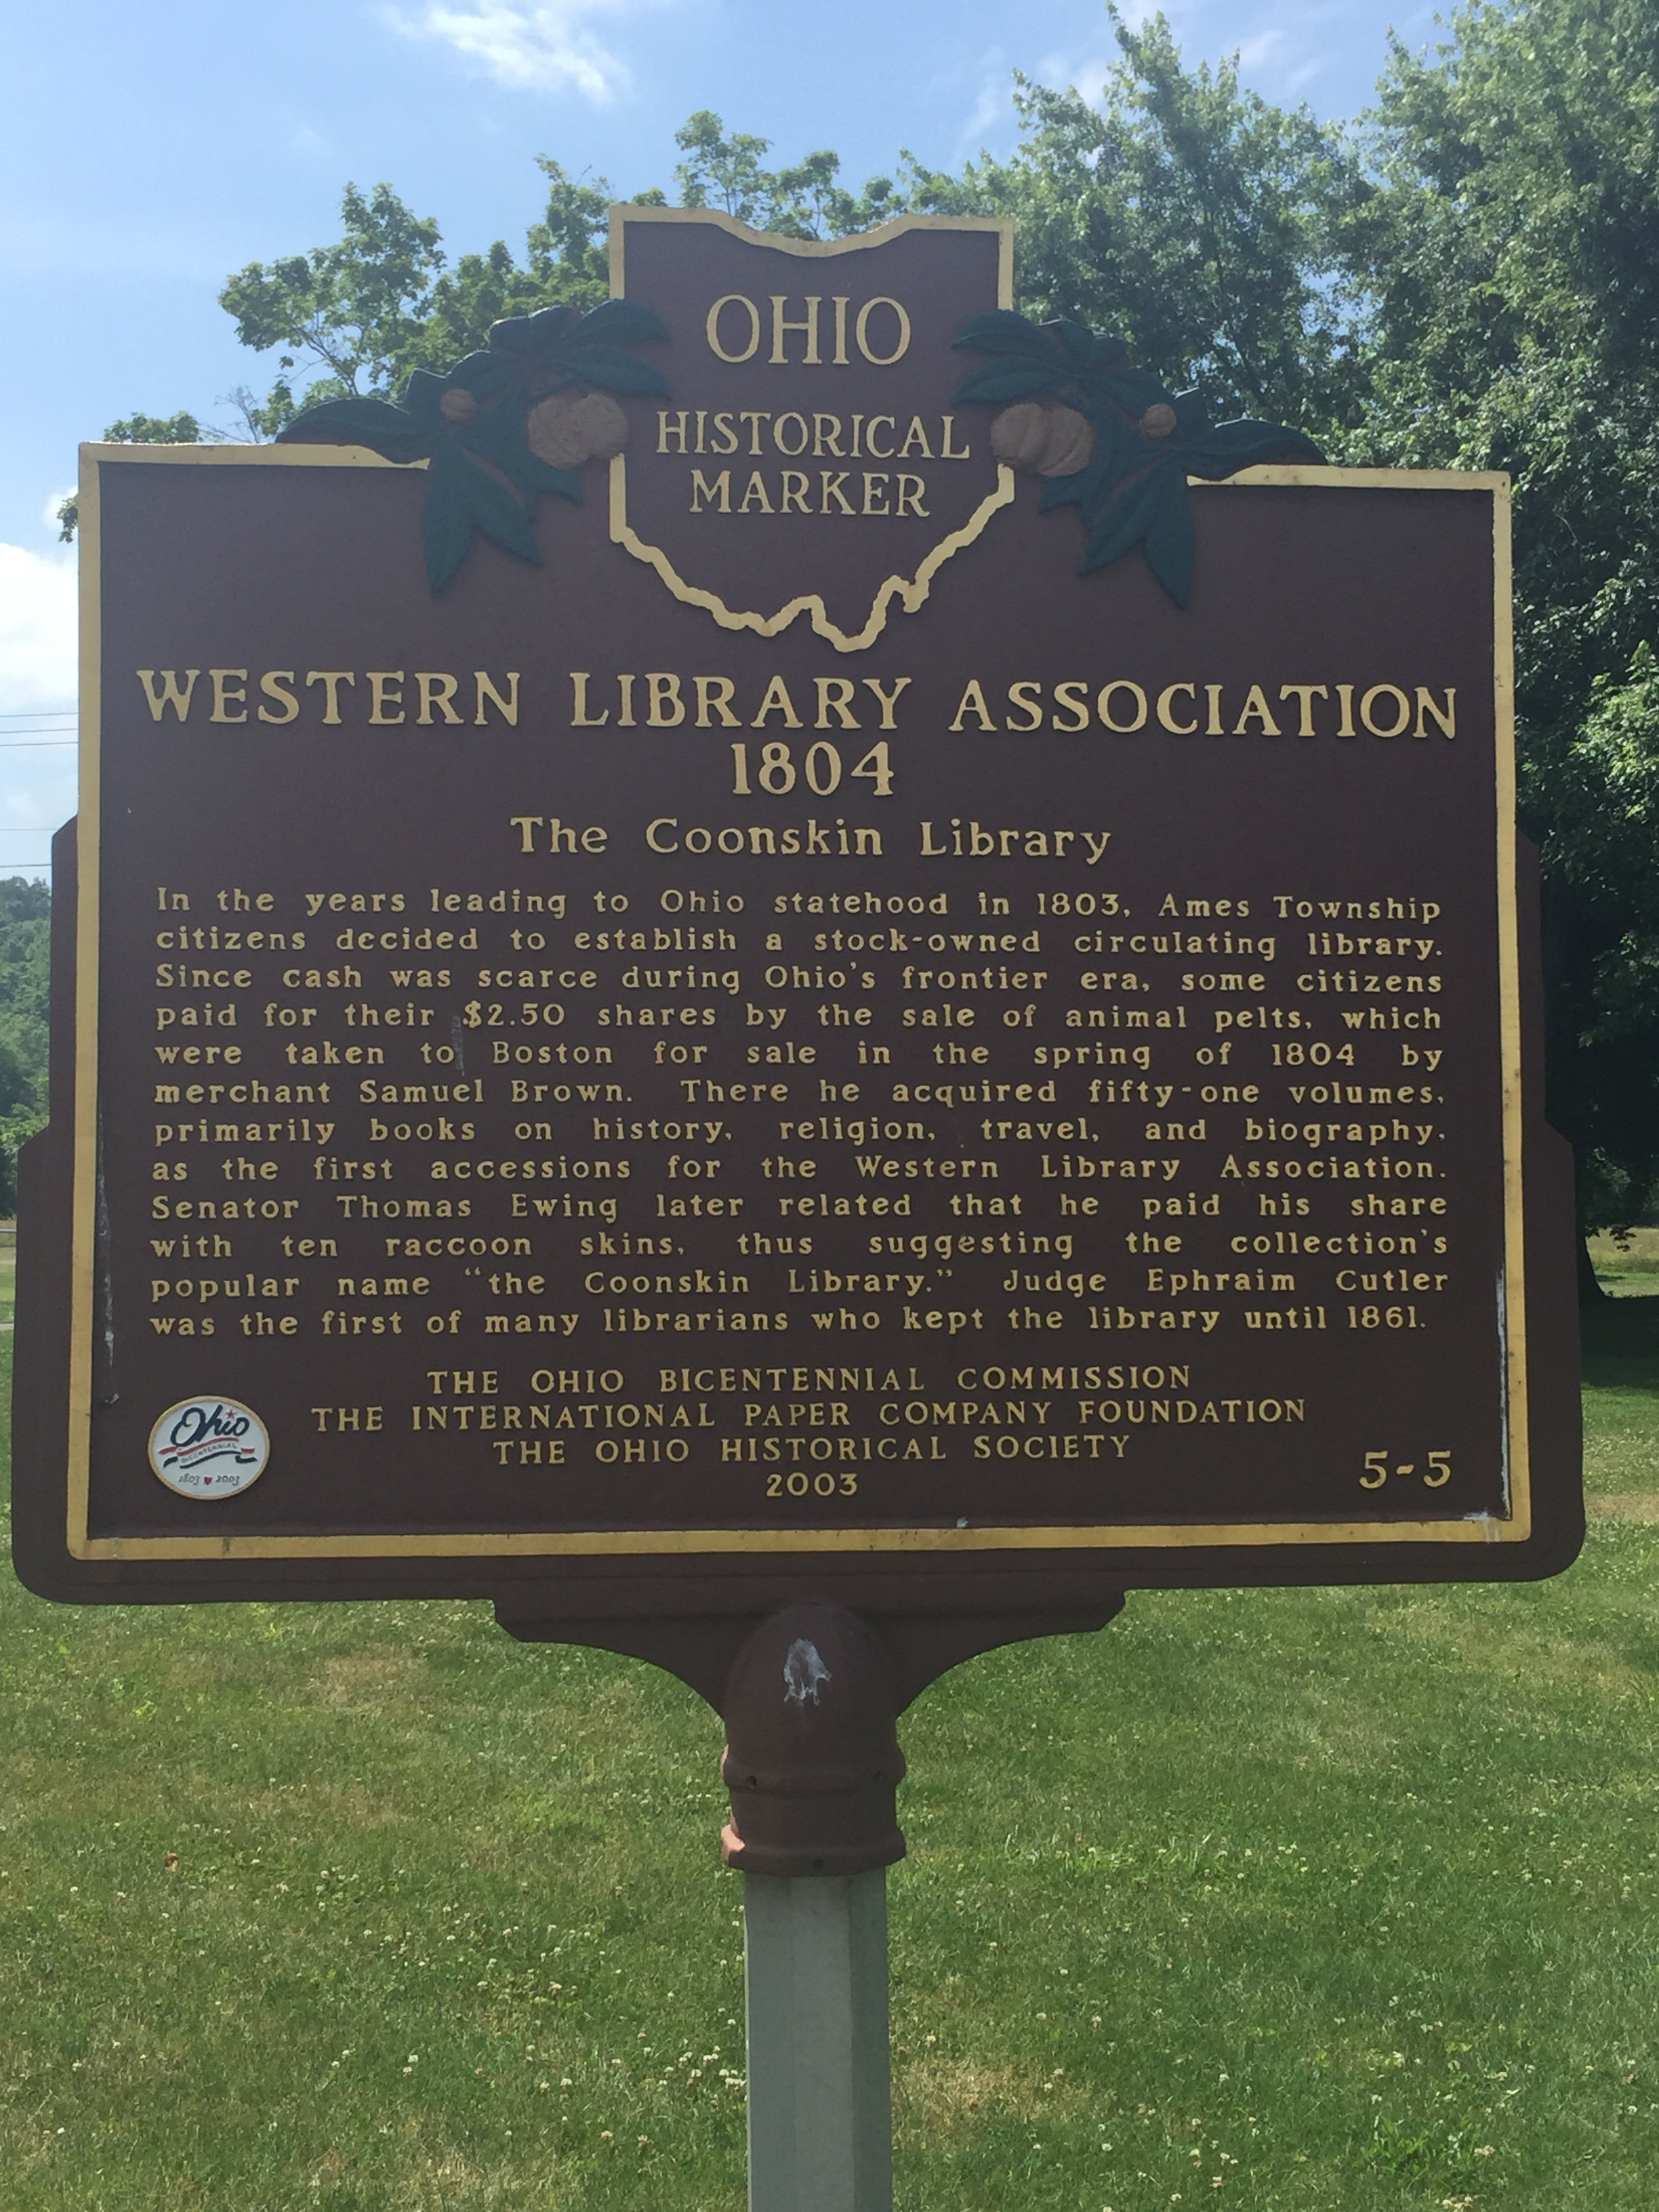 Here is the Ohio Historical Marker for the Coonskin Library located in the town's park. Erected in 2003 by the Ohio Historical Society, this marker also gives a short synopsis of the library's history. Photo by J Hazen on June 12, 2017.